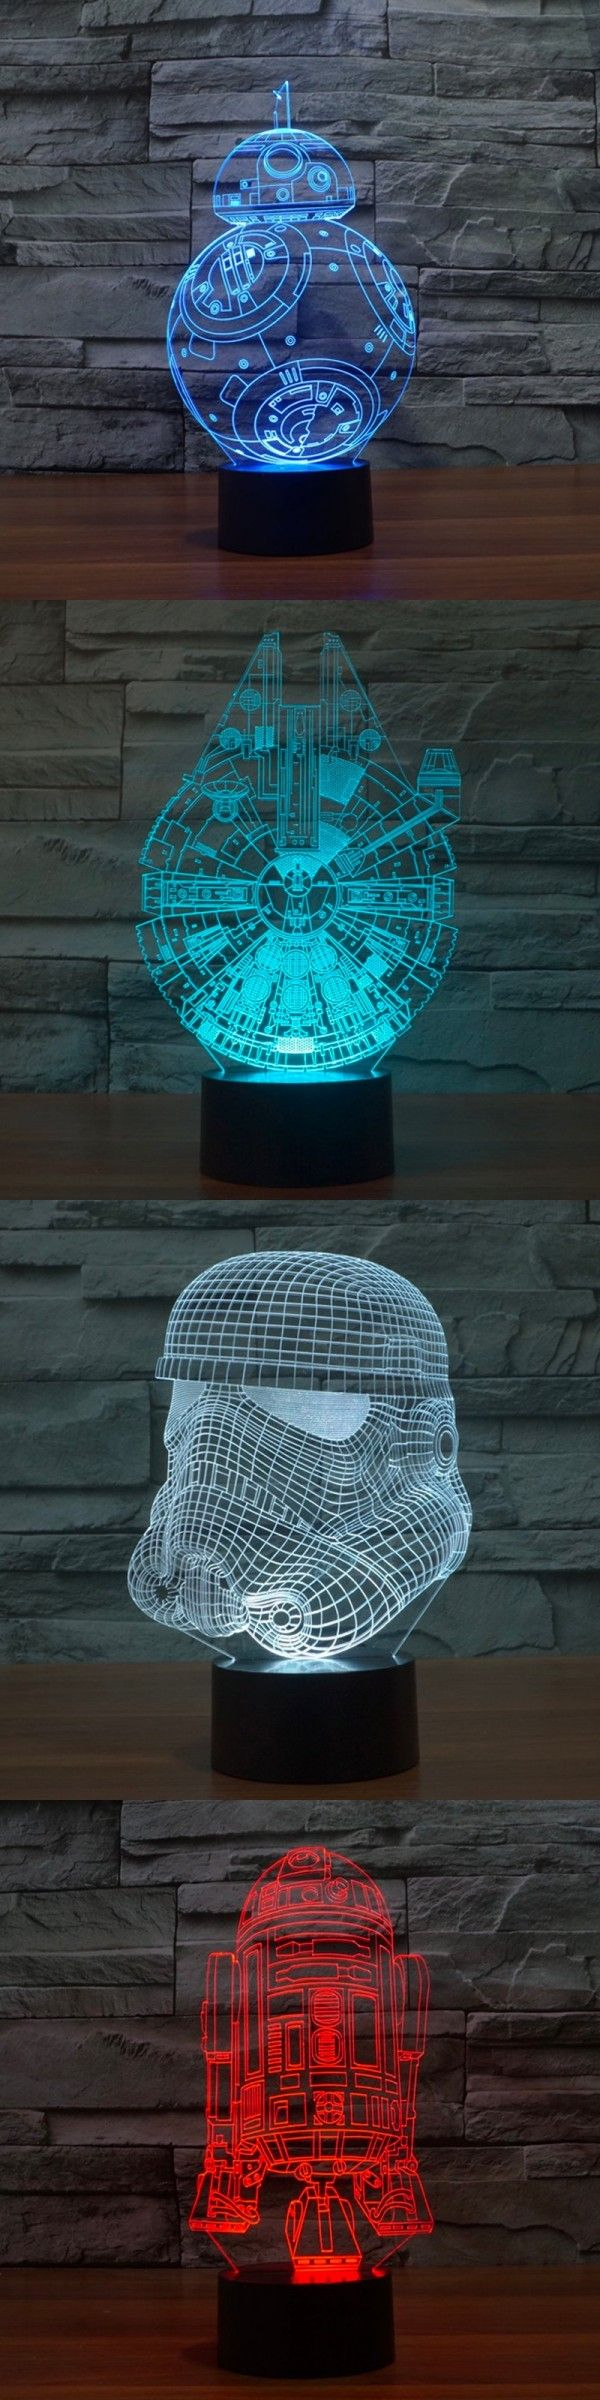 The Ultimate Star Wars Home Decor Mega-List                                                                                                                                                                                 More